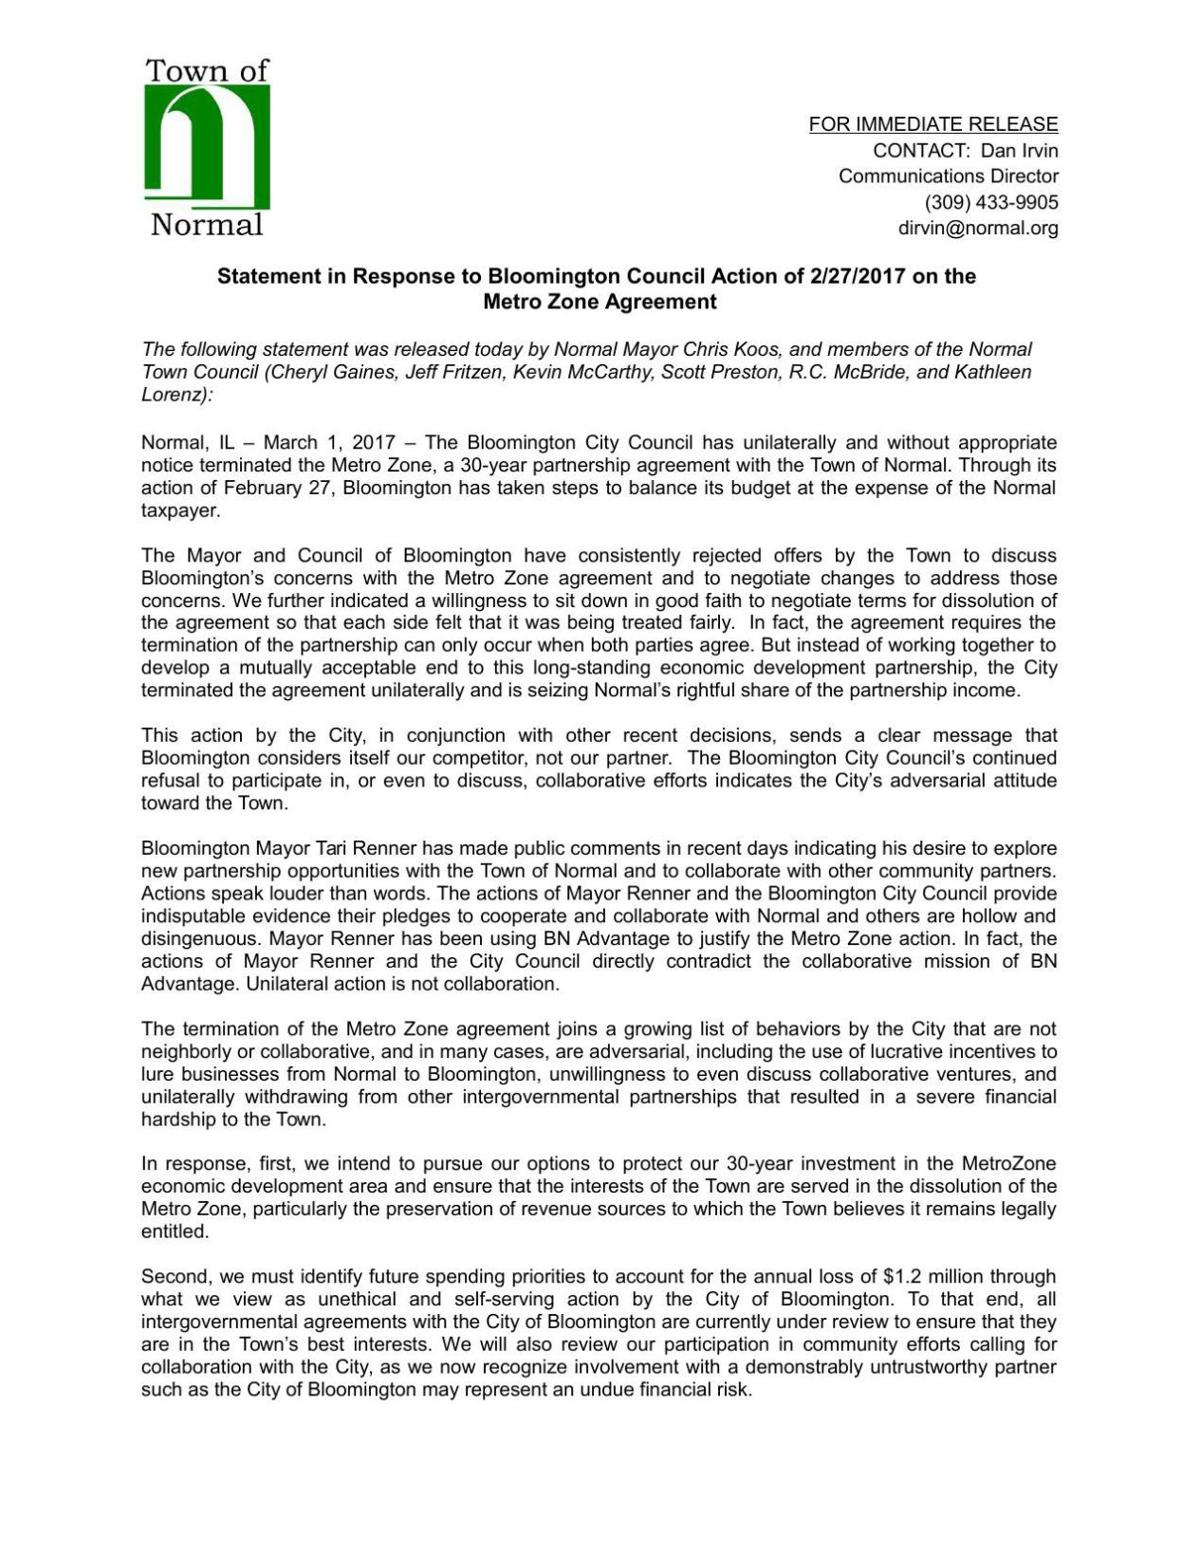 Town of Normal statement on Bloomington Metro Zone action